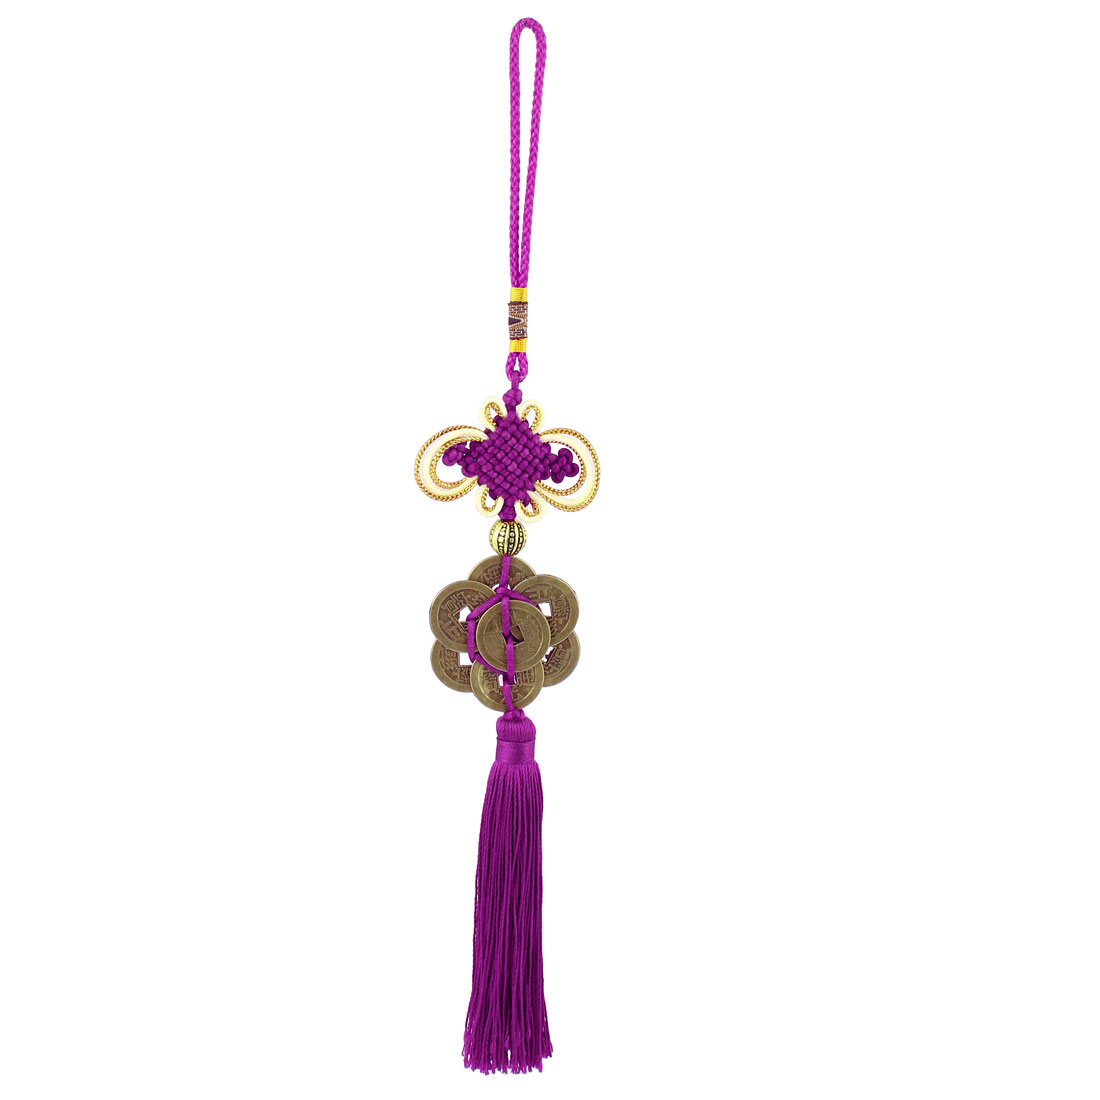 Vehicle Auto Car Chinese Knot 8 Coins Pendant Tassel Charm Hanging Ornament Decoration Gifts Purple